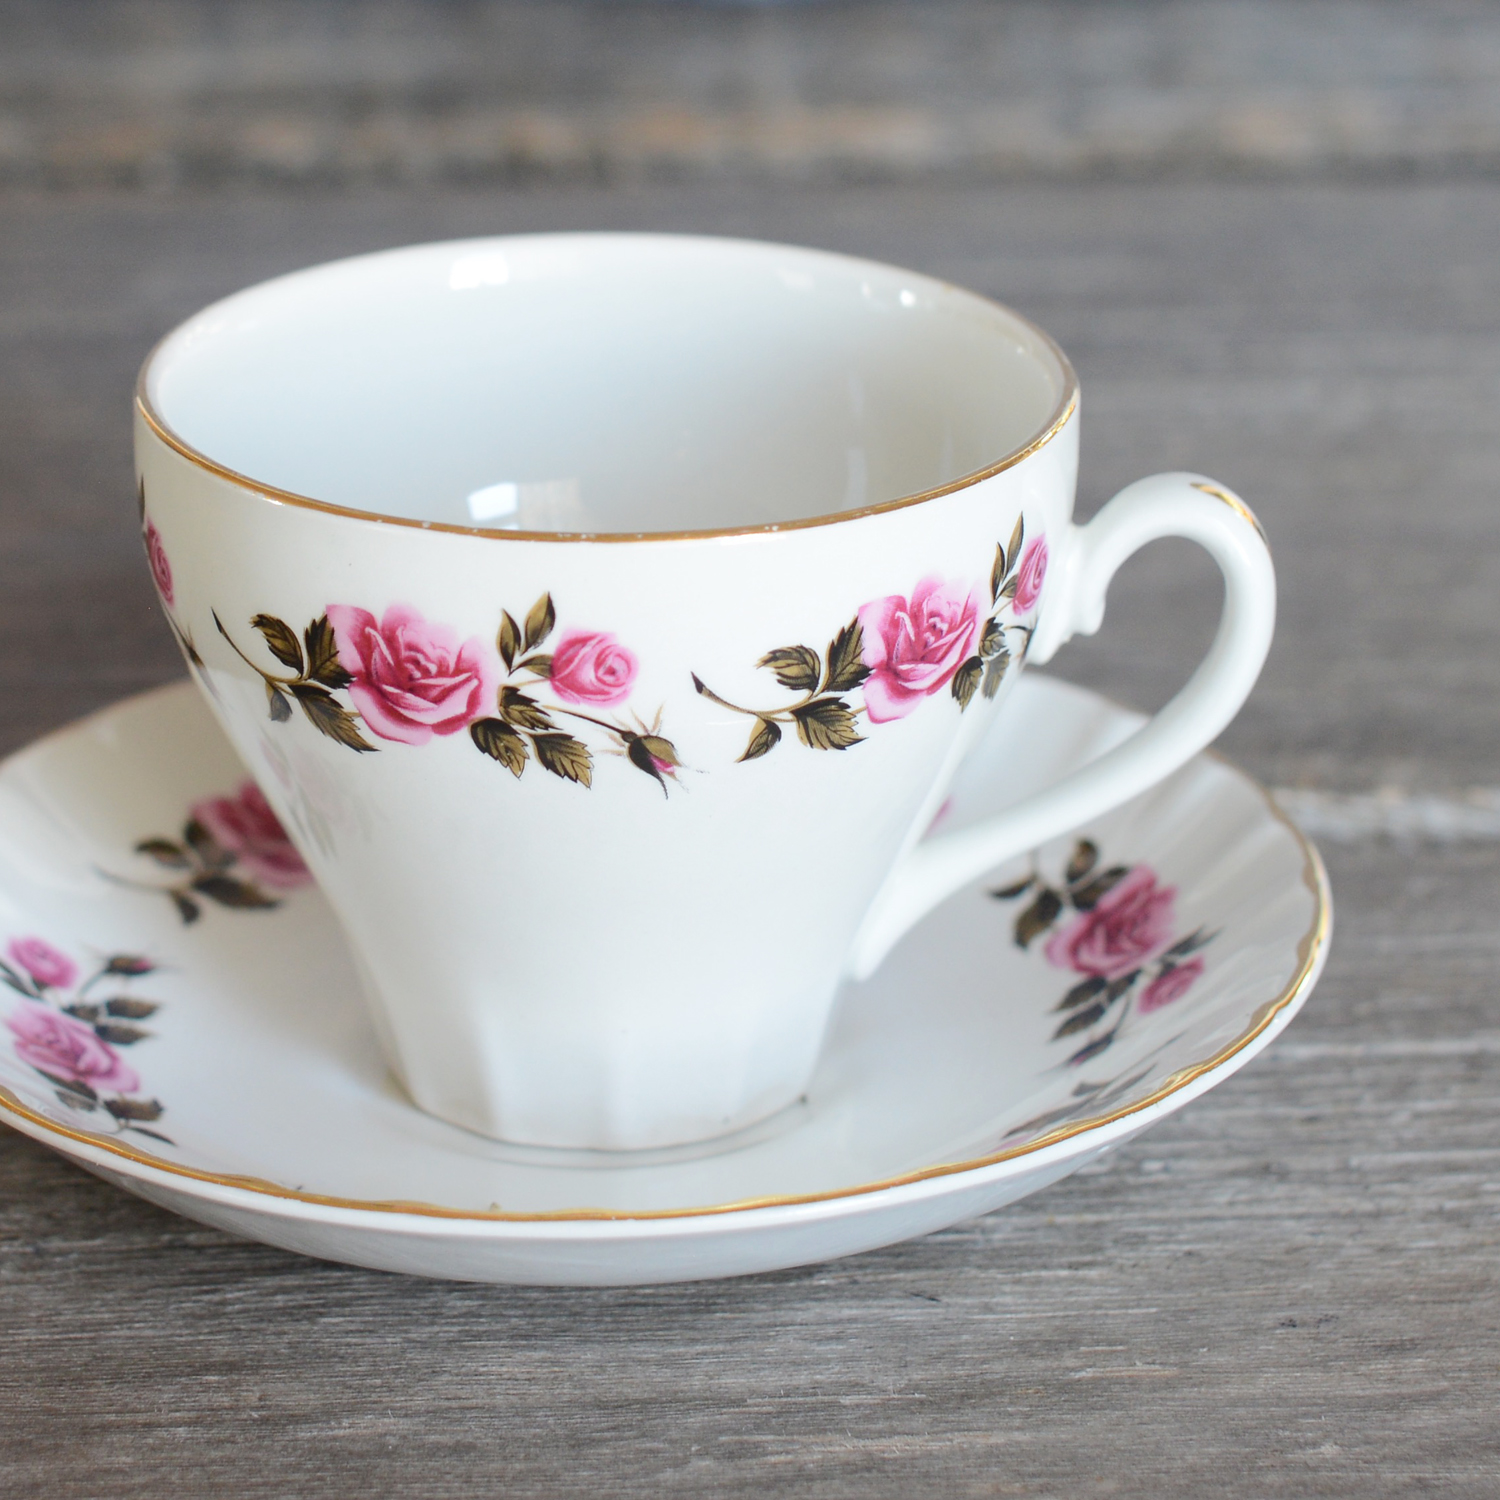 ellis tea cup and saucer - 6 available